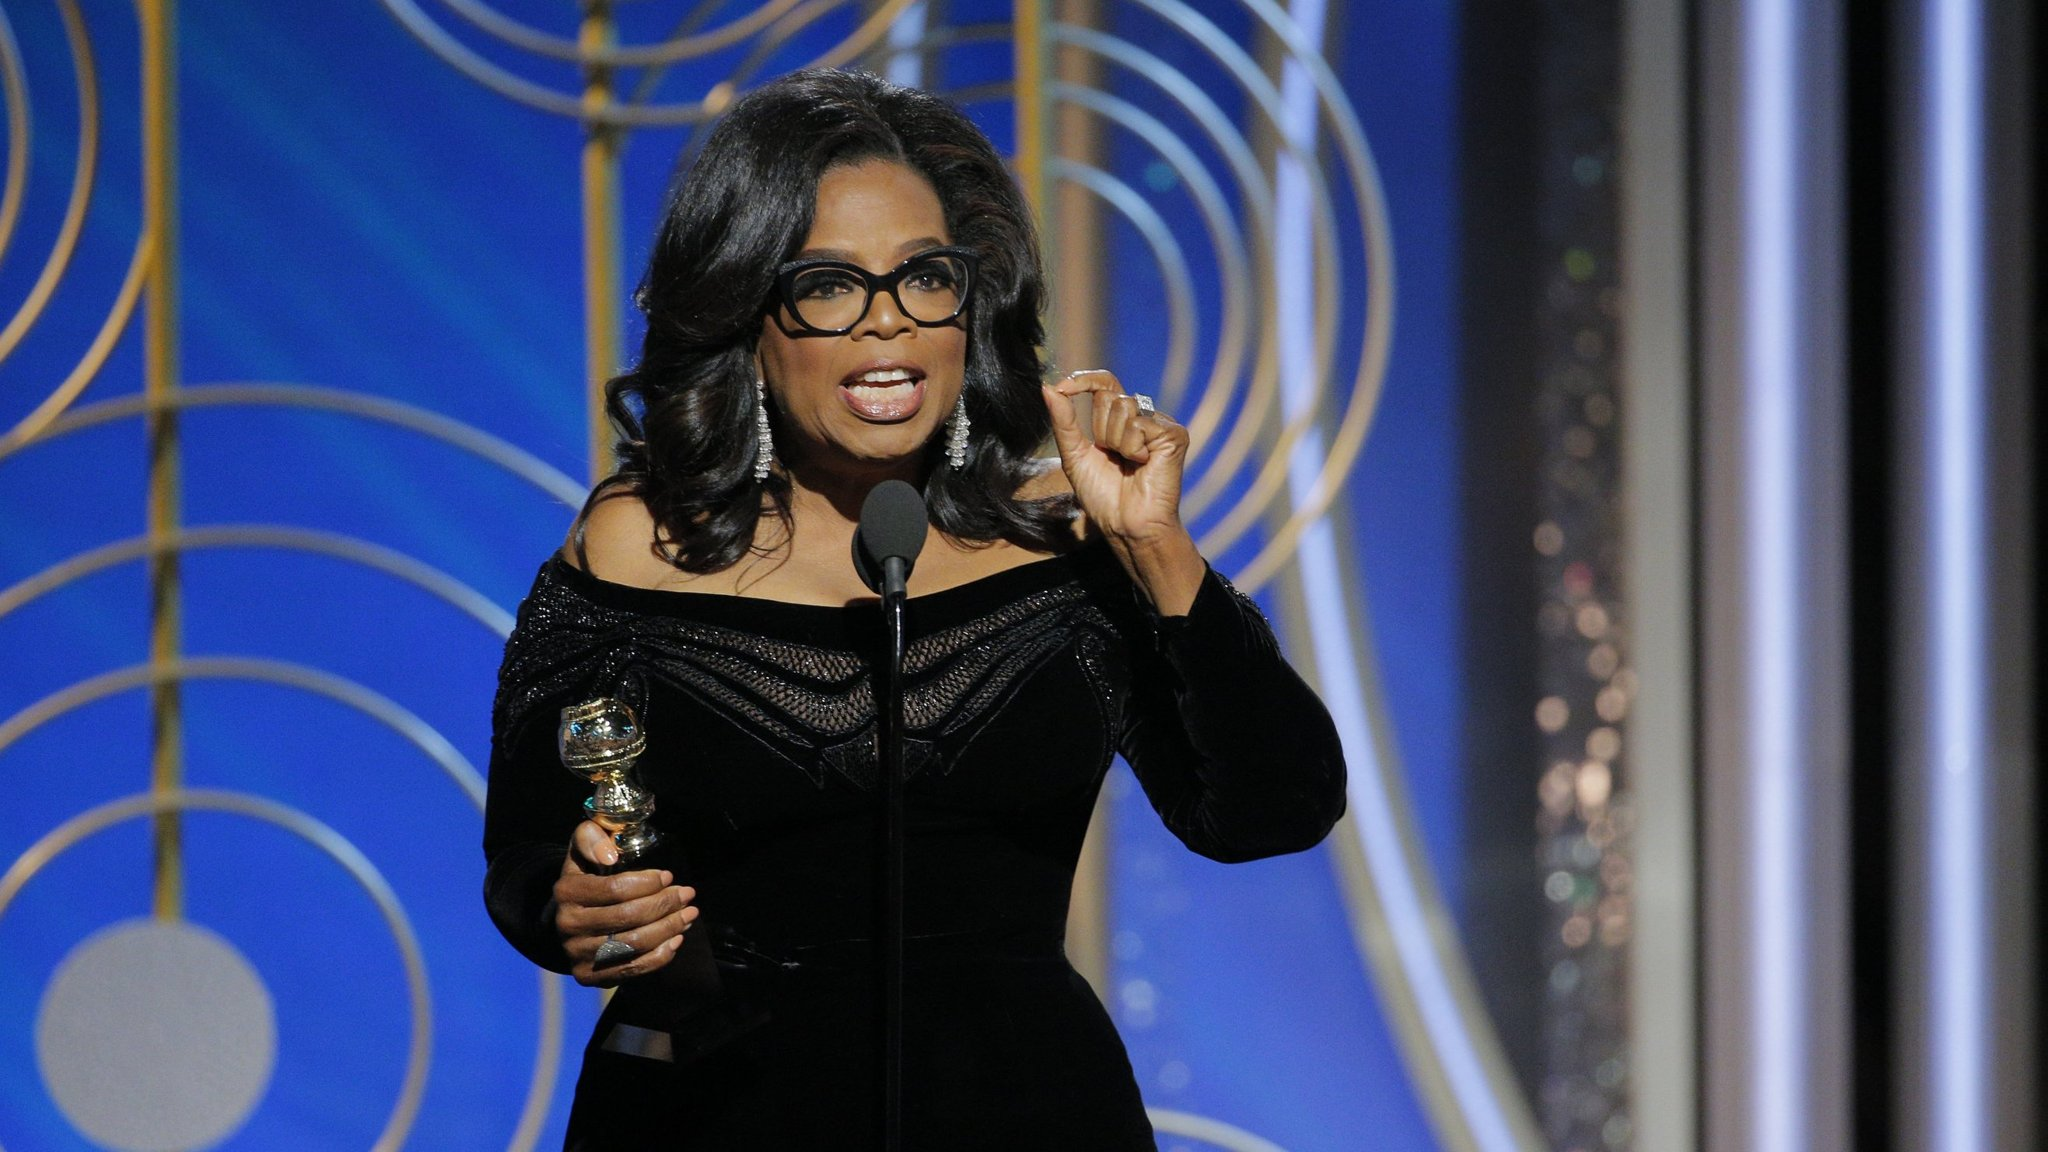 Oprah Winfrey's speech was a masterstroke of delivery